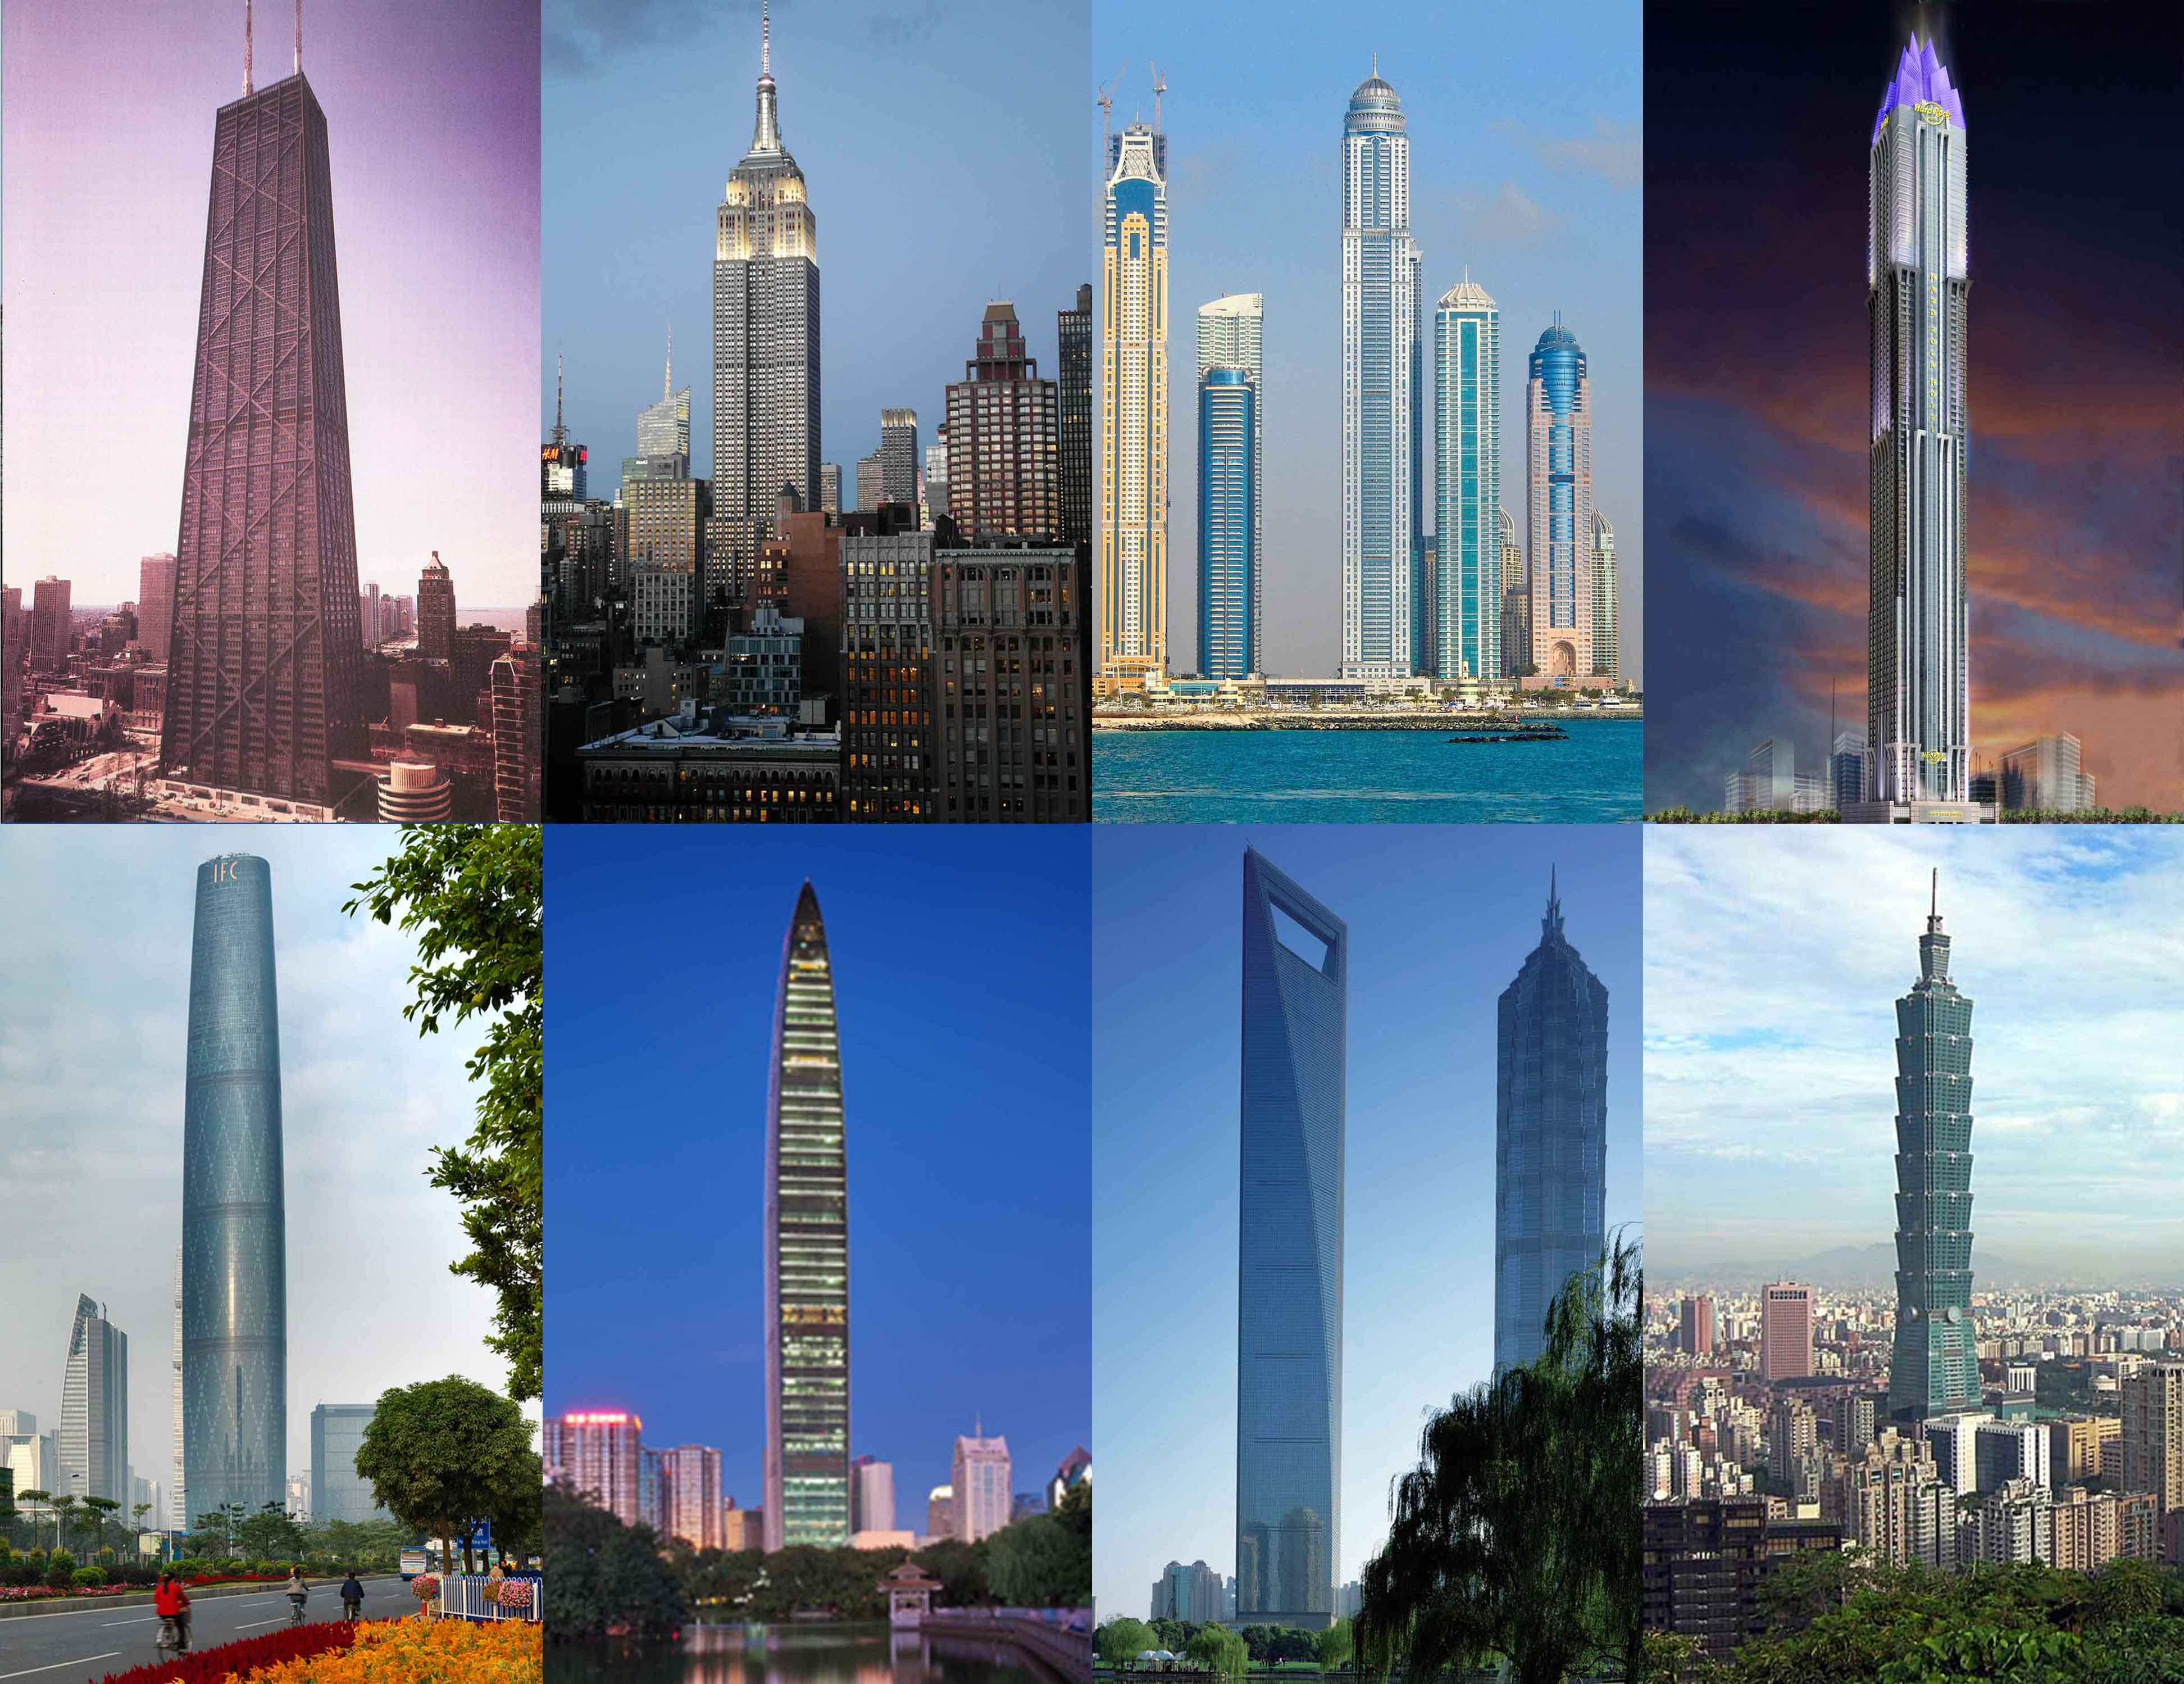 Word skyscrapers clipart graphic free download TEN TOPS - THE SKYSCRAPER MUSEUM graphic free download